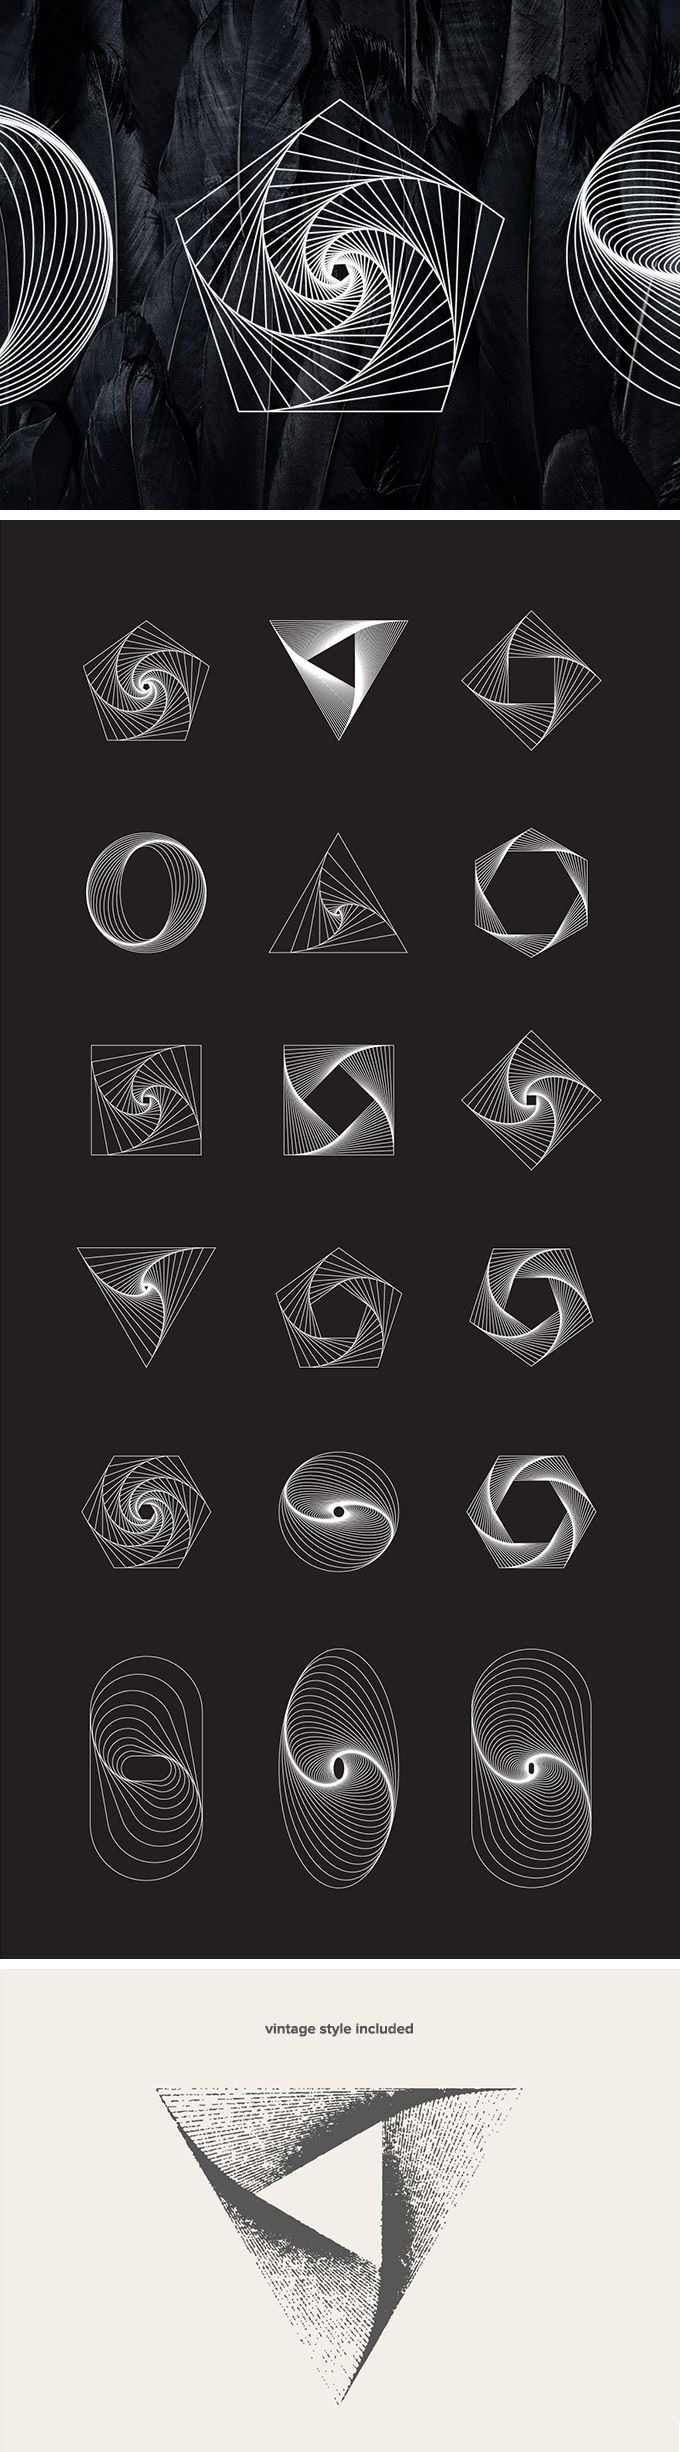 18 #free Geometric Line Art Vectors Get a set of 18 #geometric line art #objects in vector format. Give your design project a perfectly calculated geometrical touch with these beautiful illustrations in 2 styles: solid and grungy. The freebie comes in easily adjustable vector formats (Ai + EPS) and high-resolution JPG and transparent PNG formats.